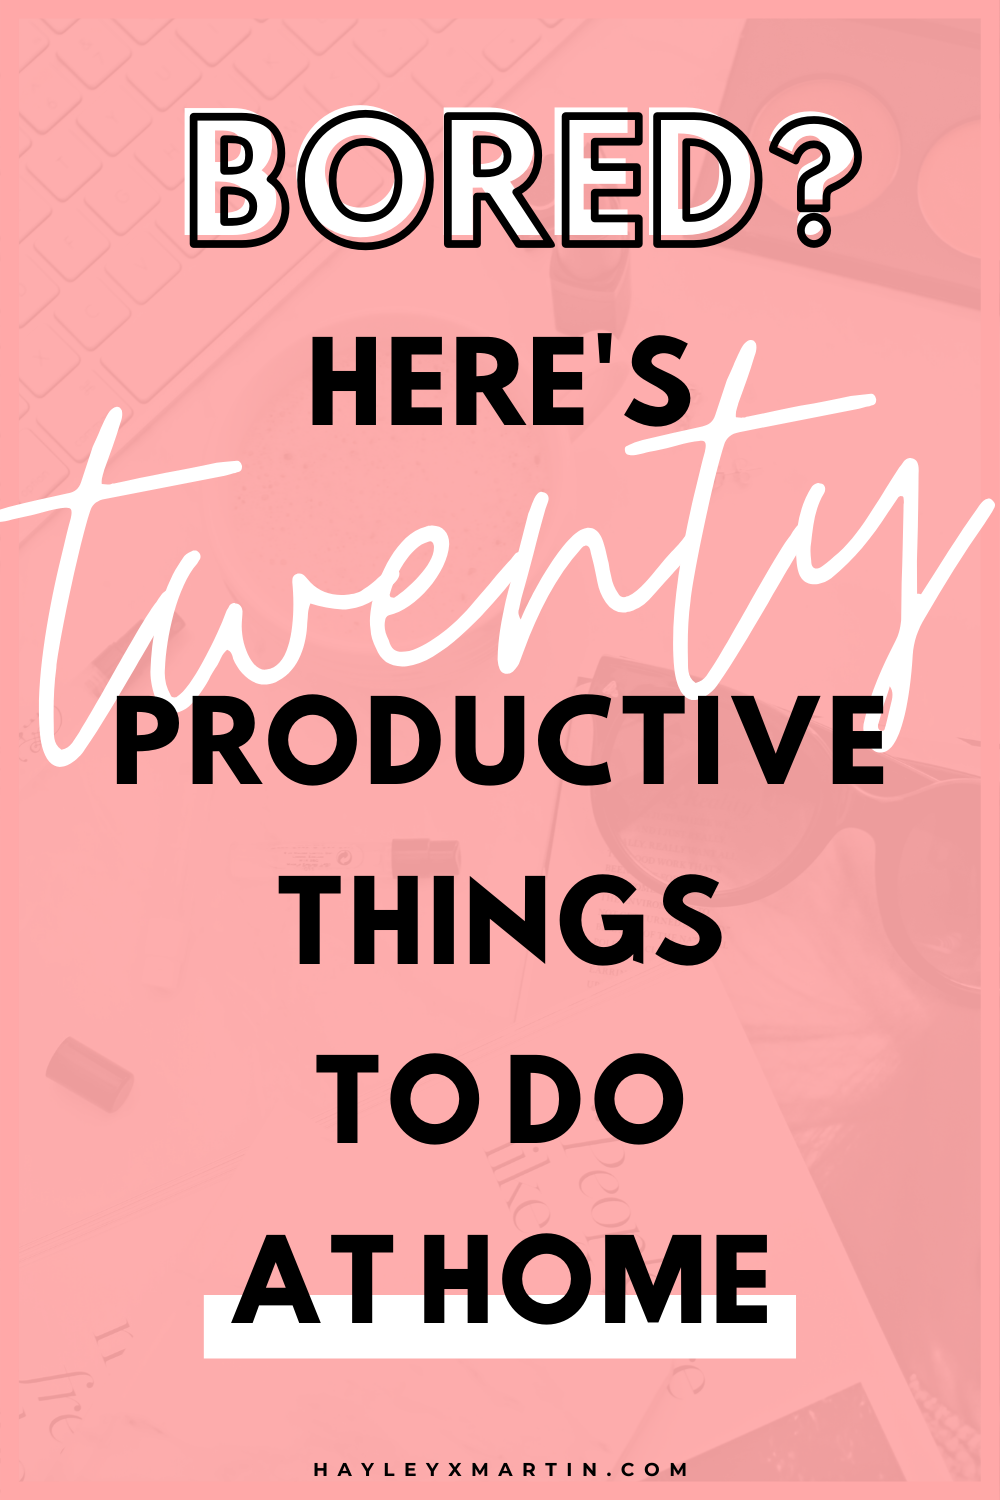 bored? here's twenty productive things to do at home | hayleyxmartin